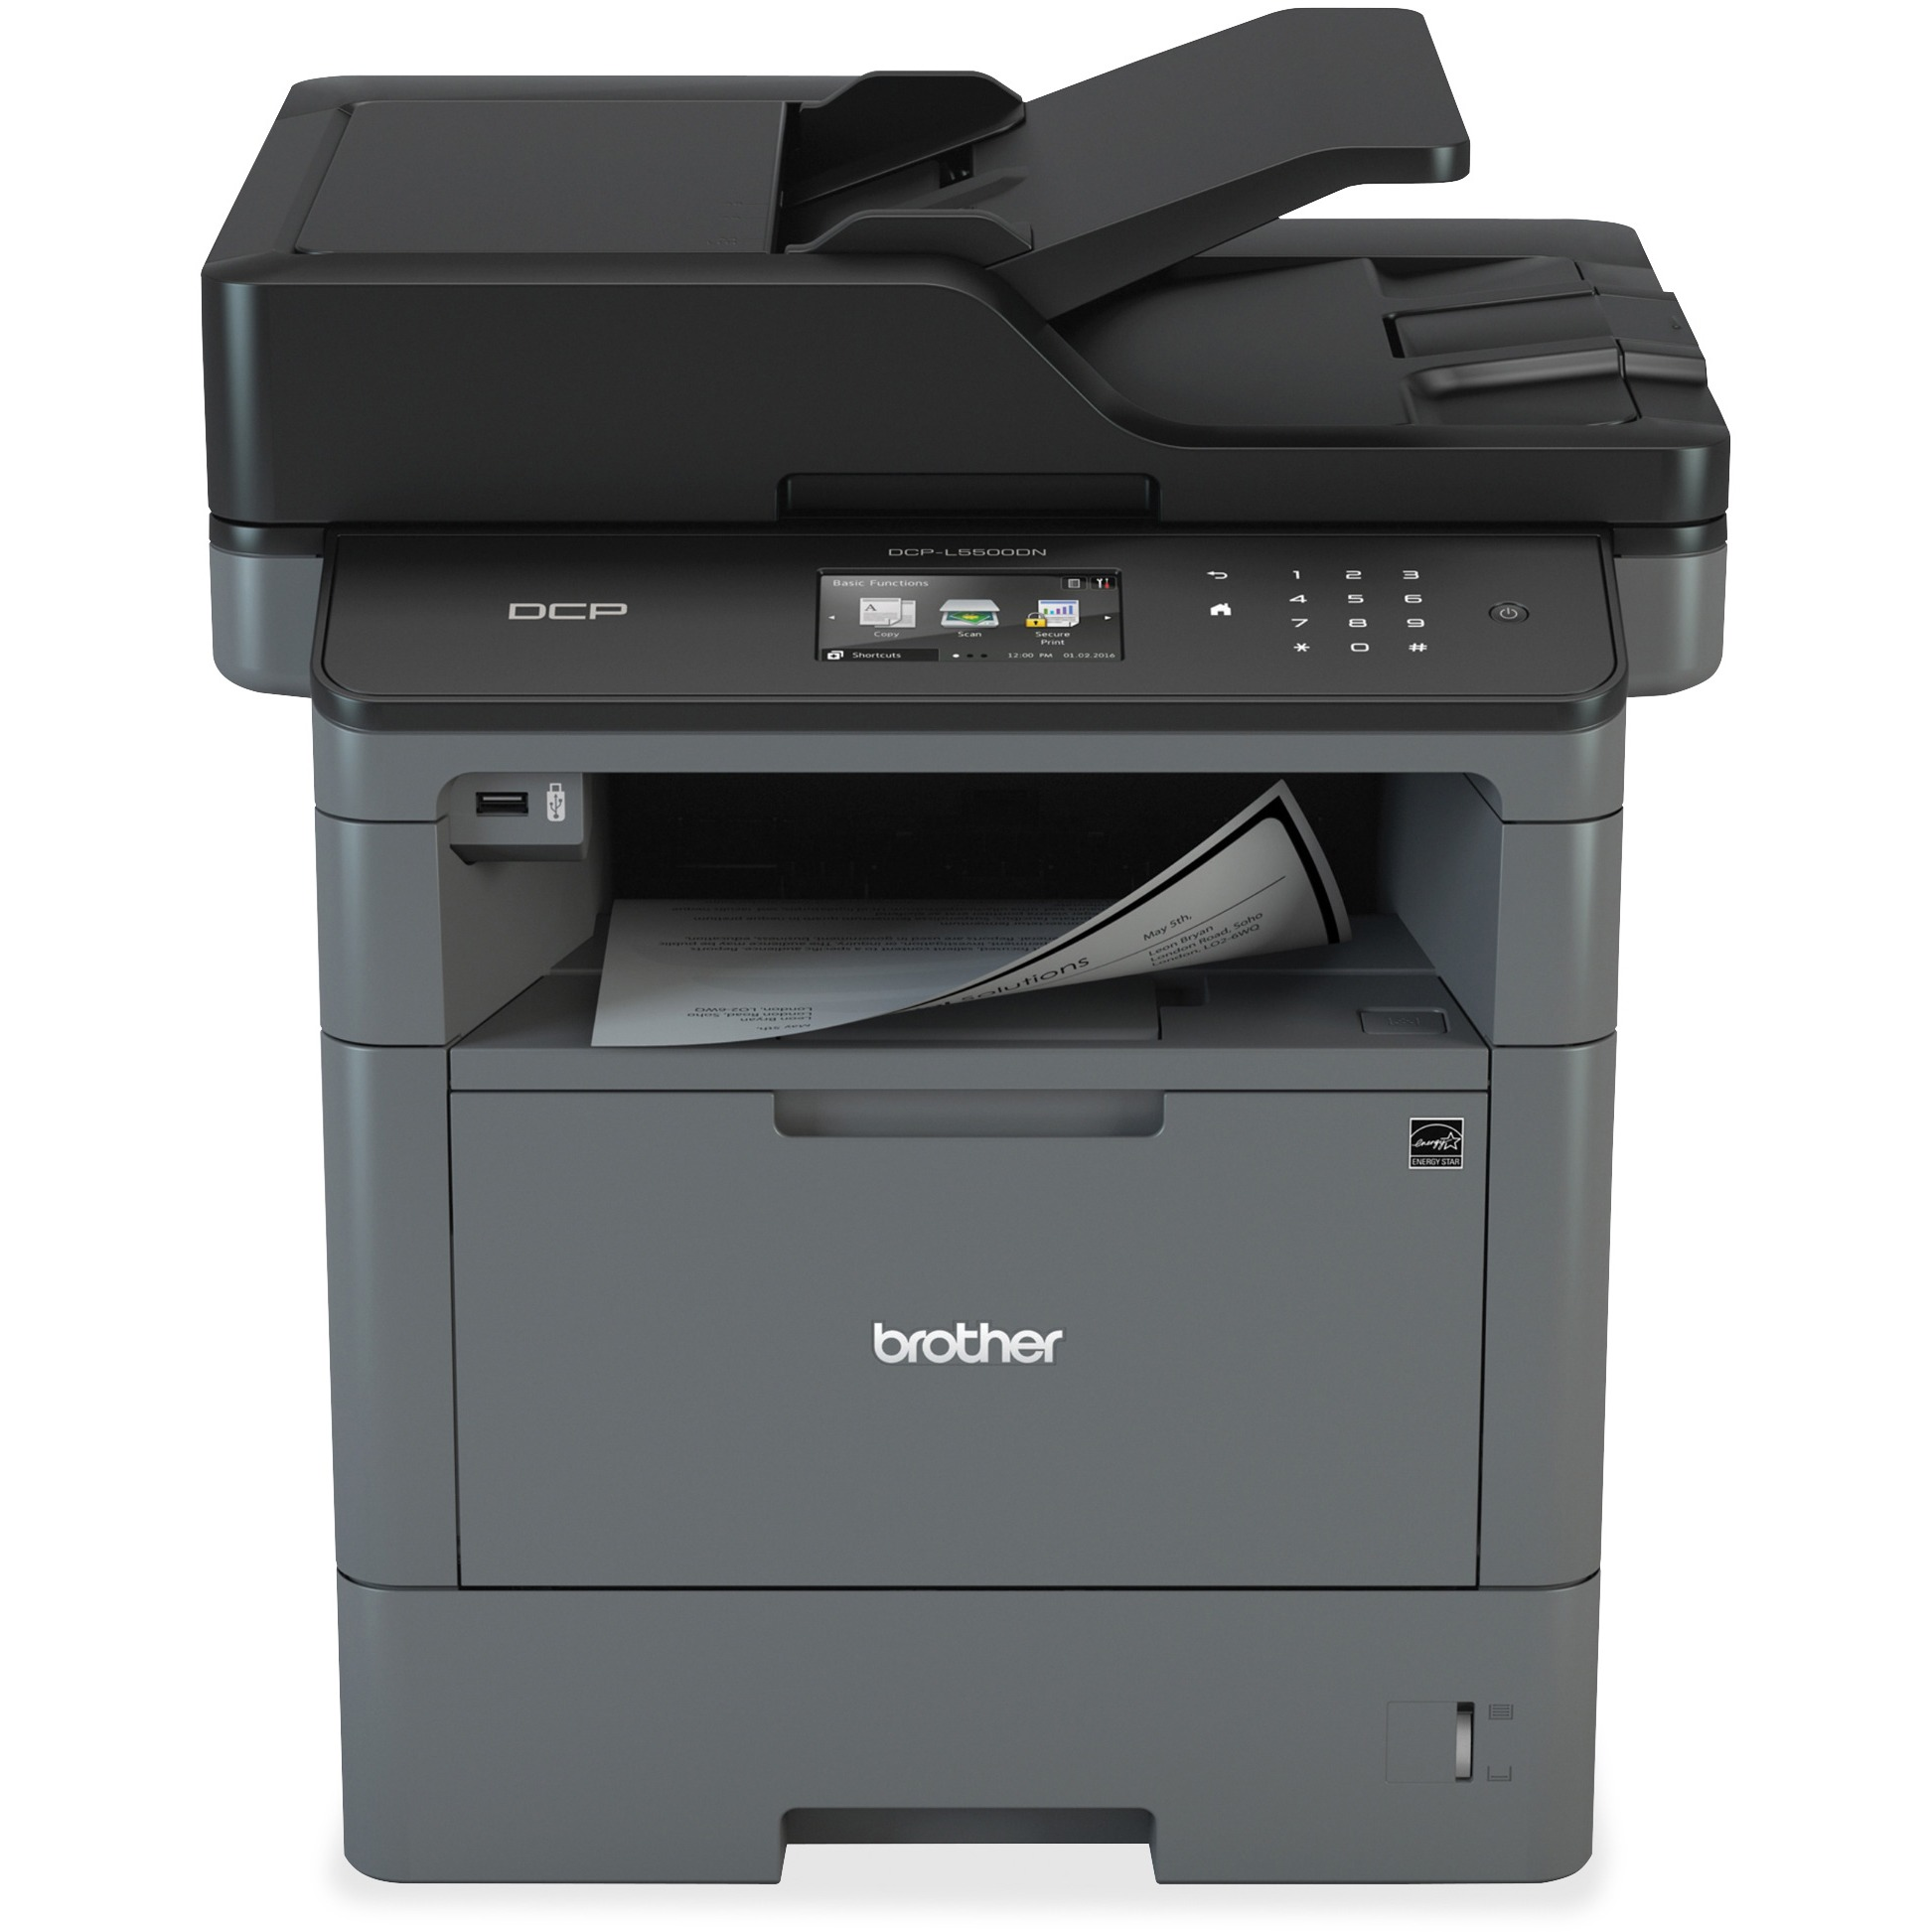 Brother DCP-L5500DN Laser Multifunction Printer - Monochrome - Duplex